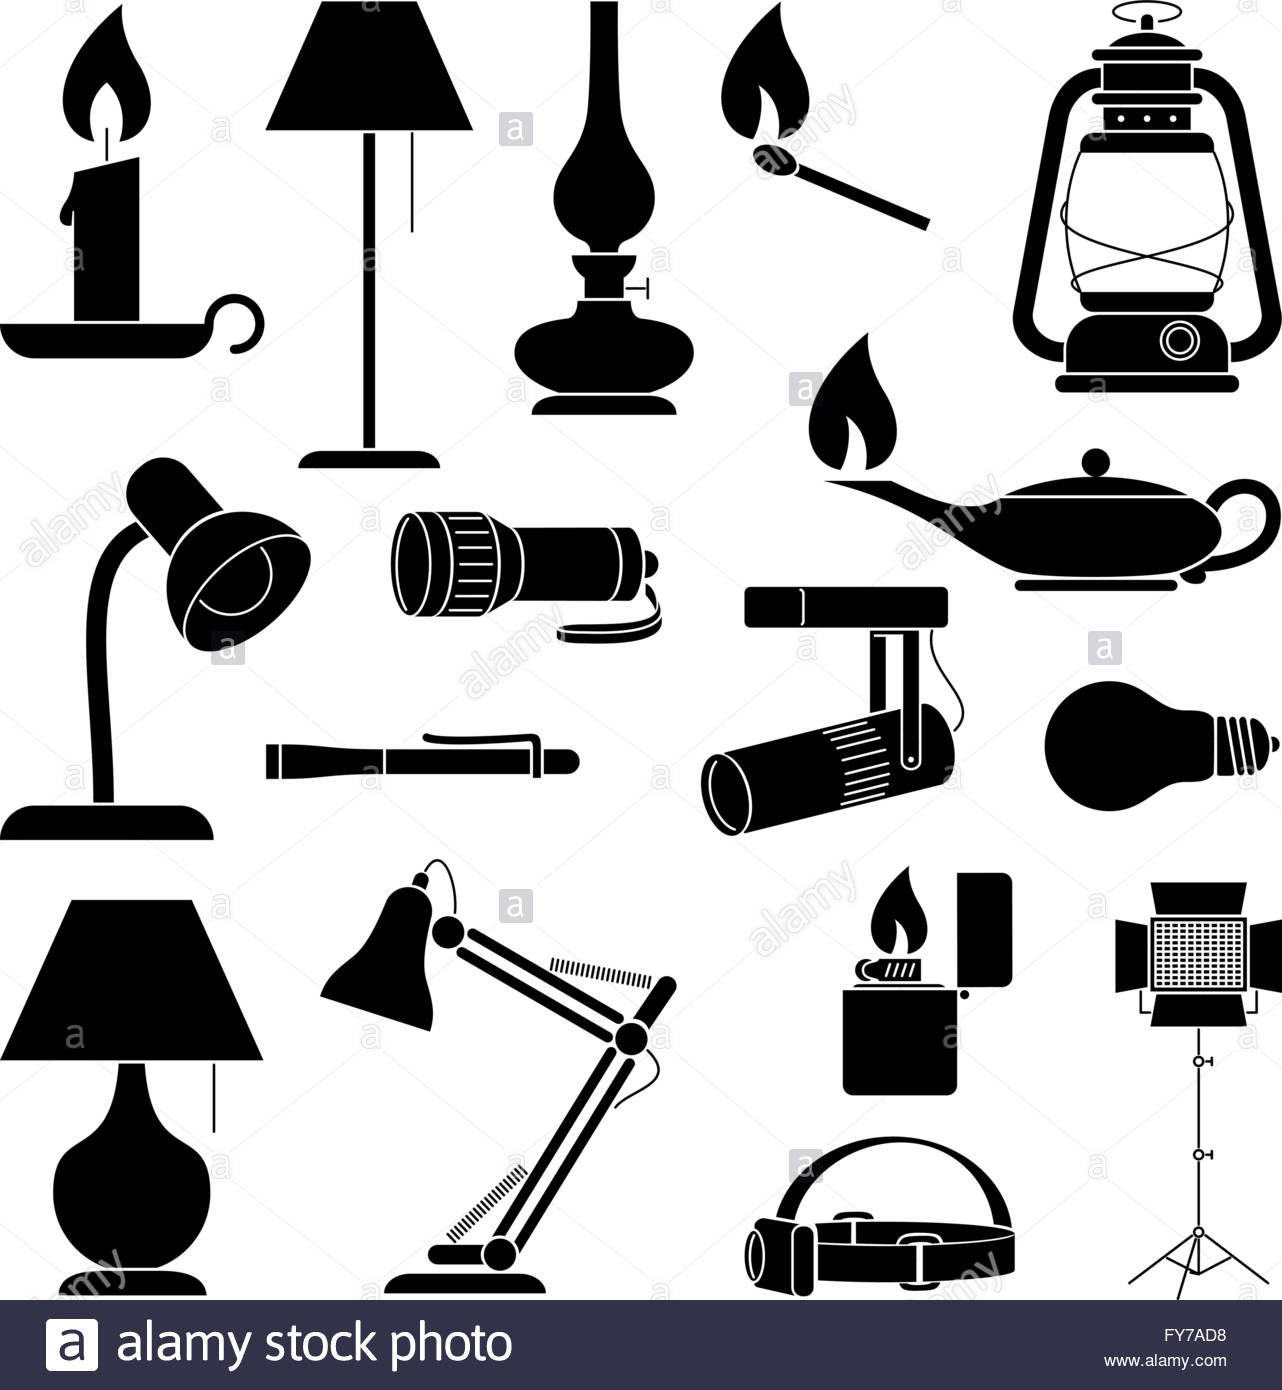 Lamp Silhouettes. Set of Lamp Silhouettes - Stock Image